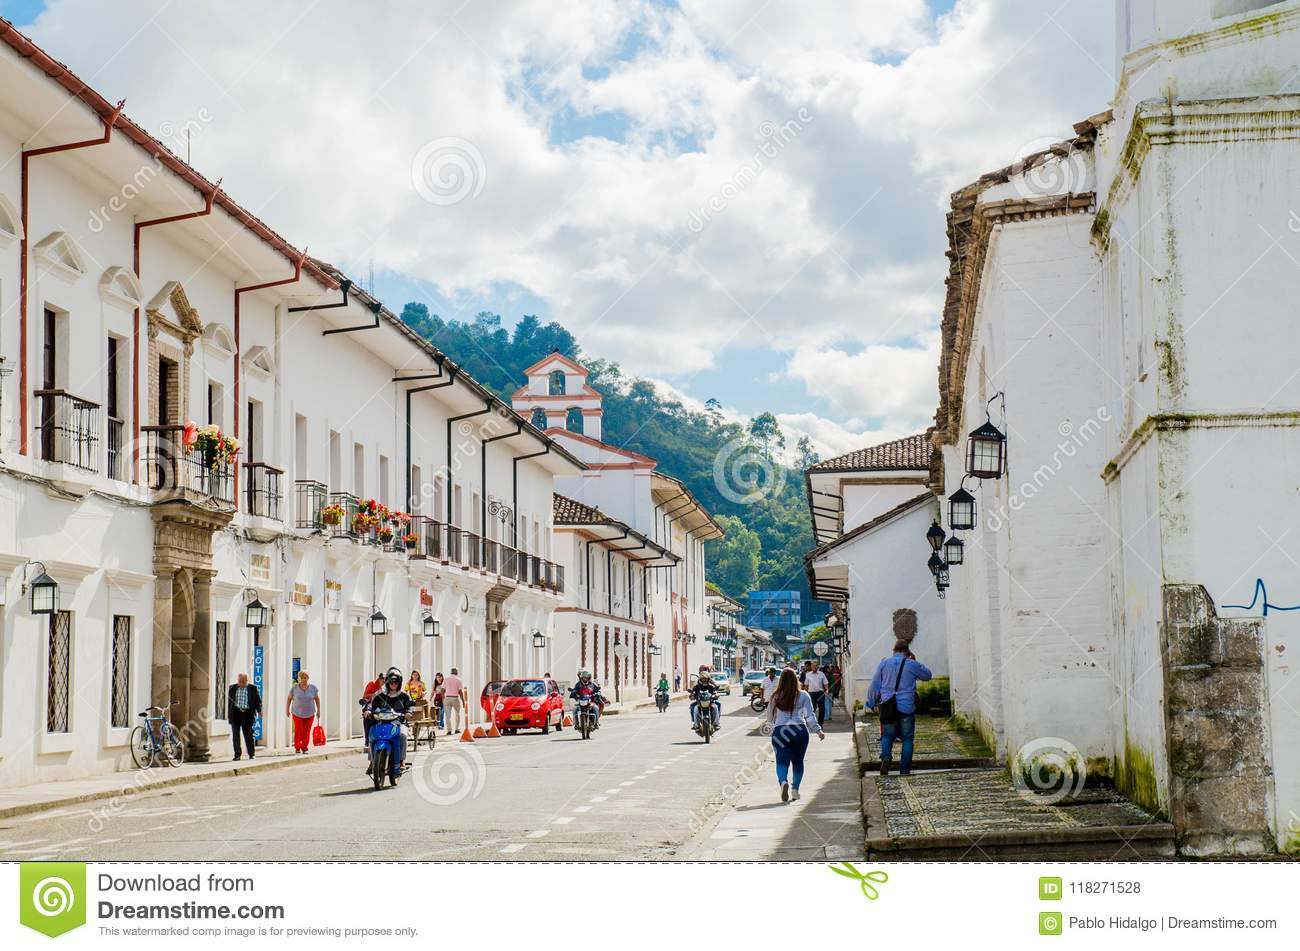 Download POPAYAN, COLOMBIA - FEBRUARY 06, 2018: Outdoor View Of Unidentified People Walking In The Streets Of The Town Of Popayan Editorial Stock Photo - Image of american, tourism: 118271528